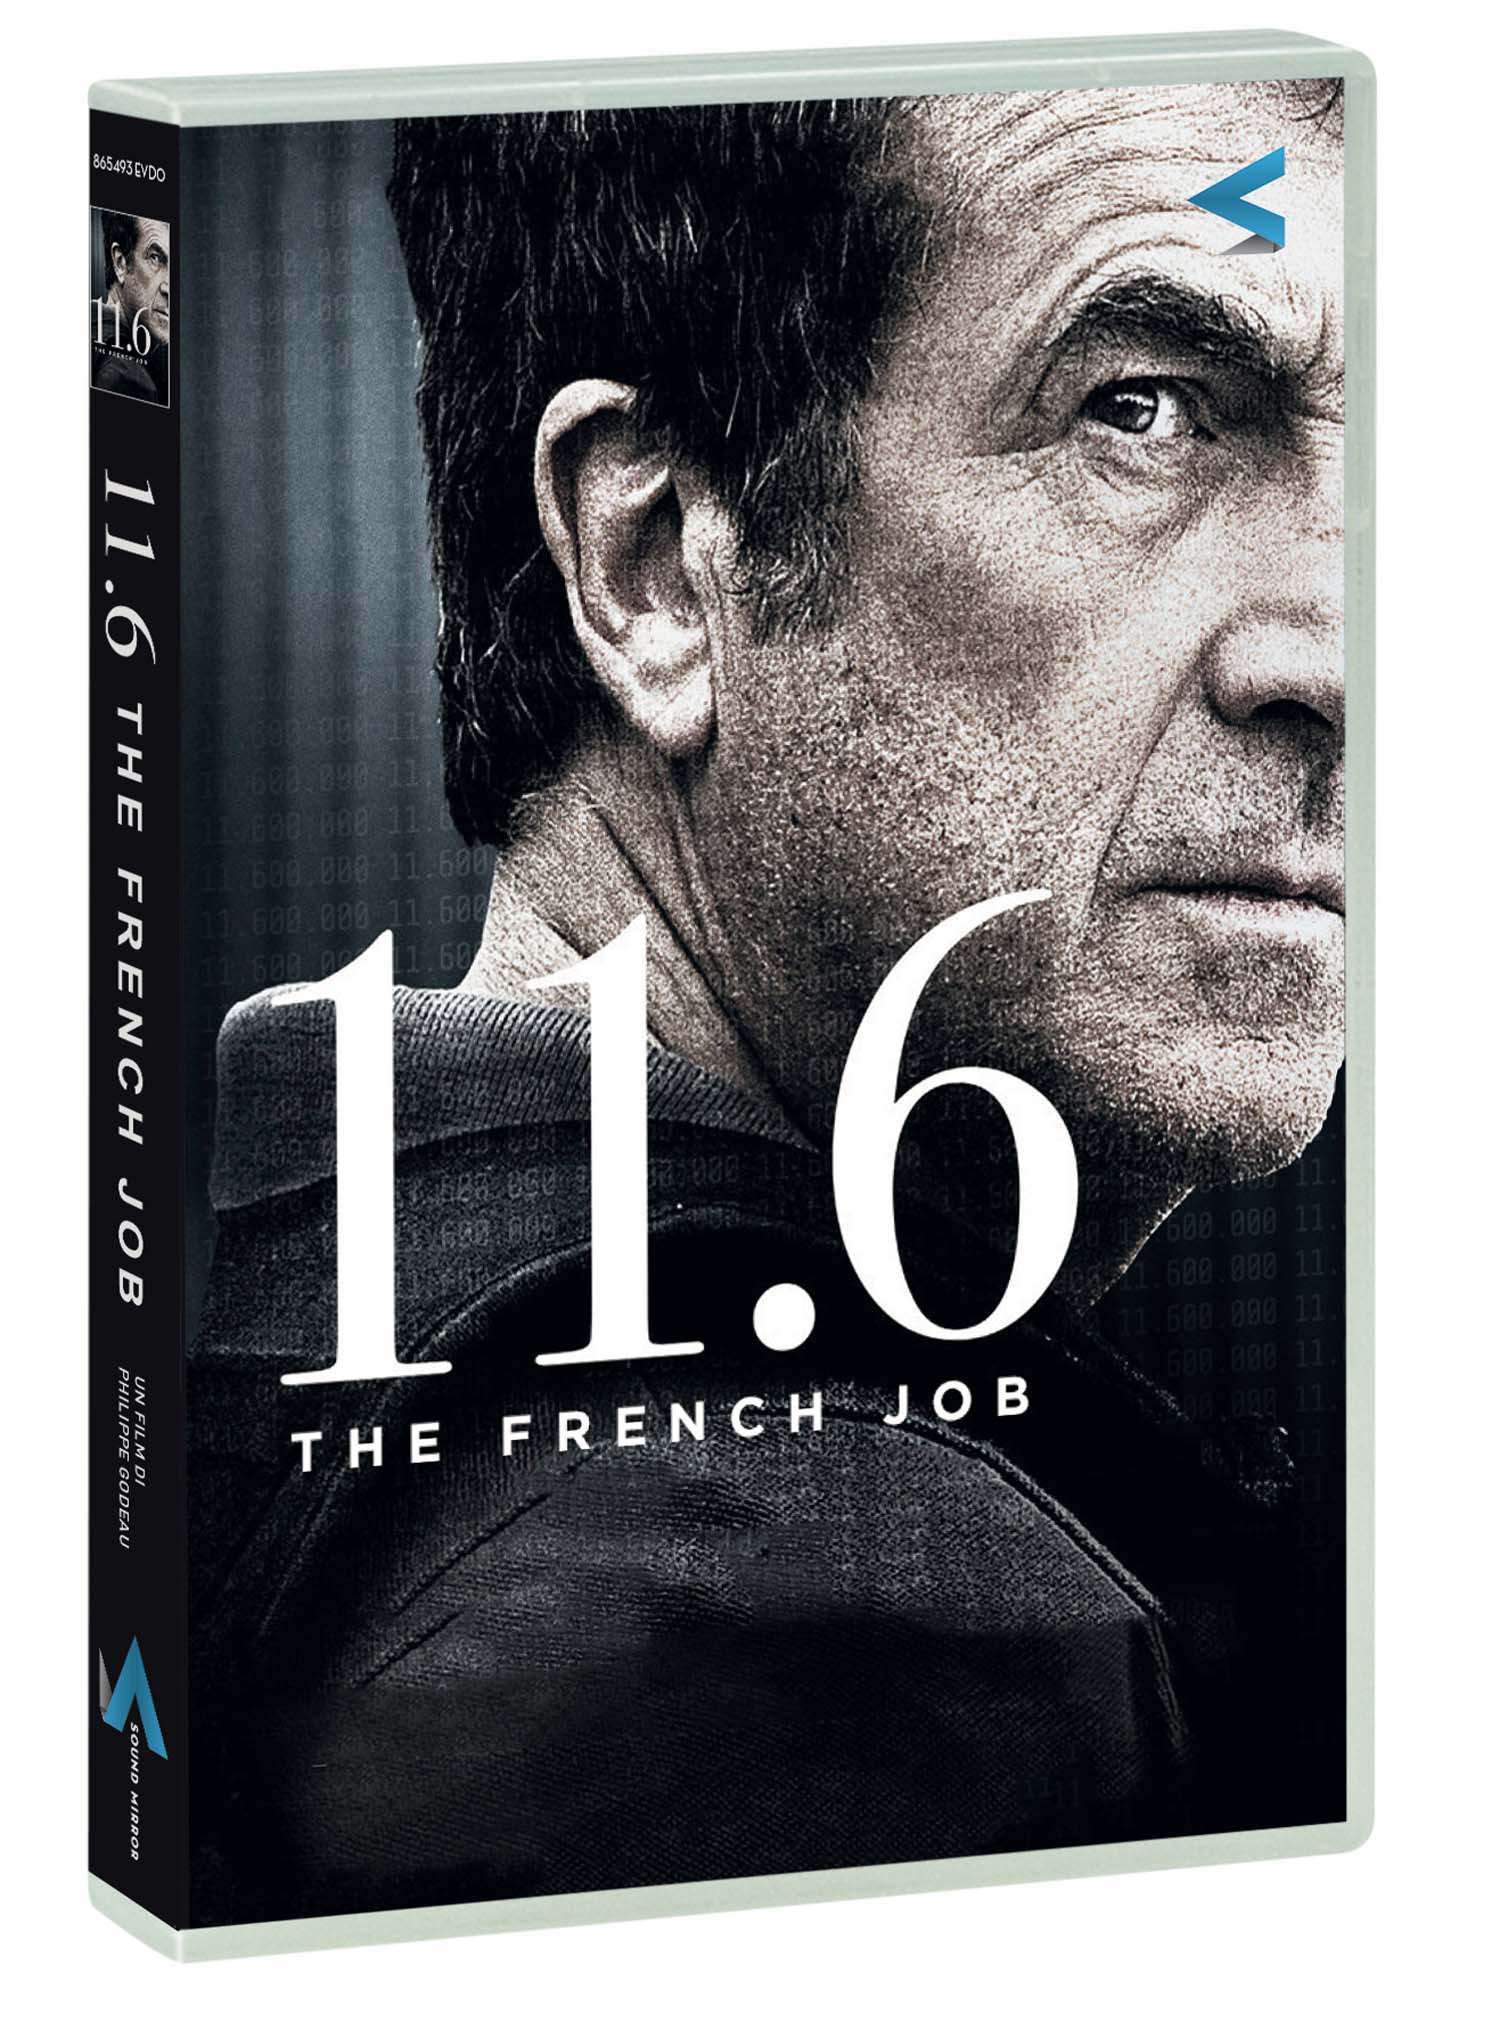 11.6 THE FRENCH JOB (DVD)